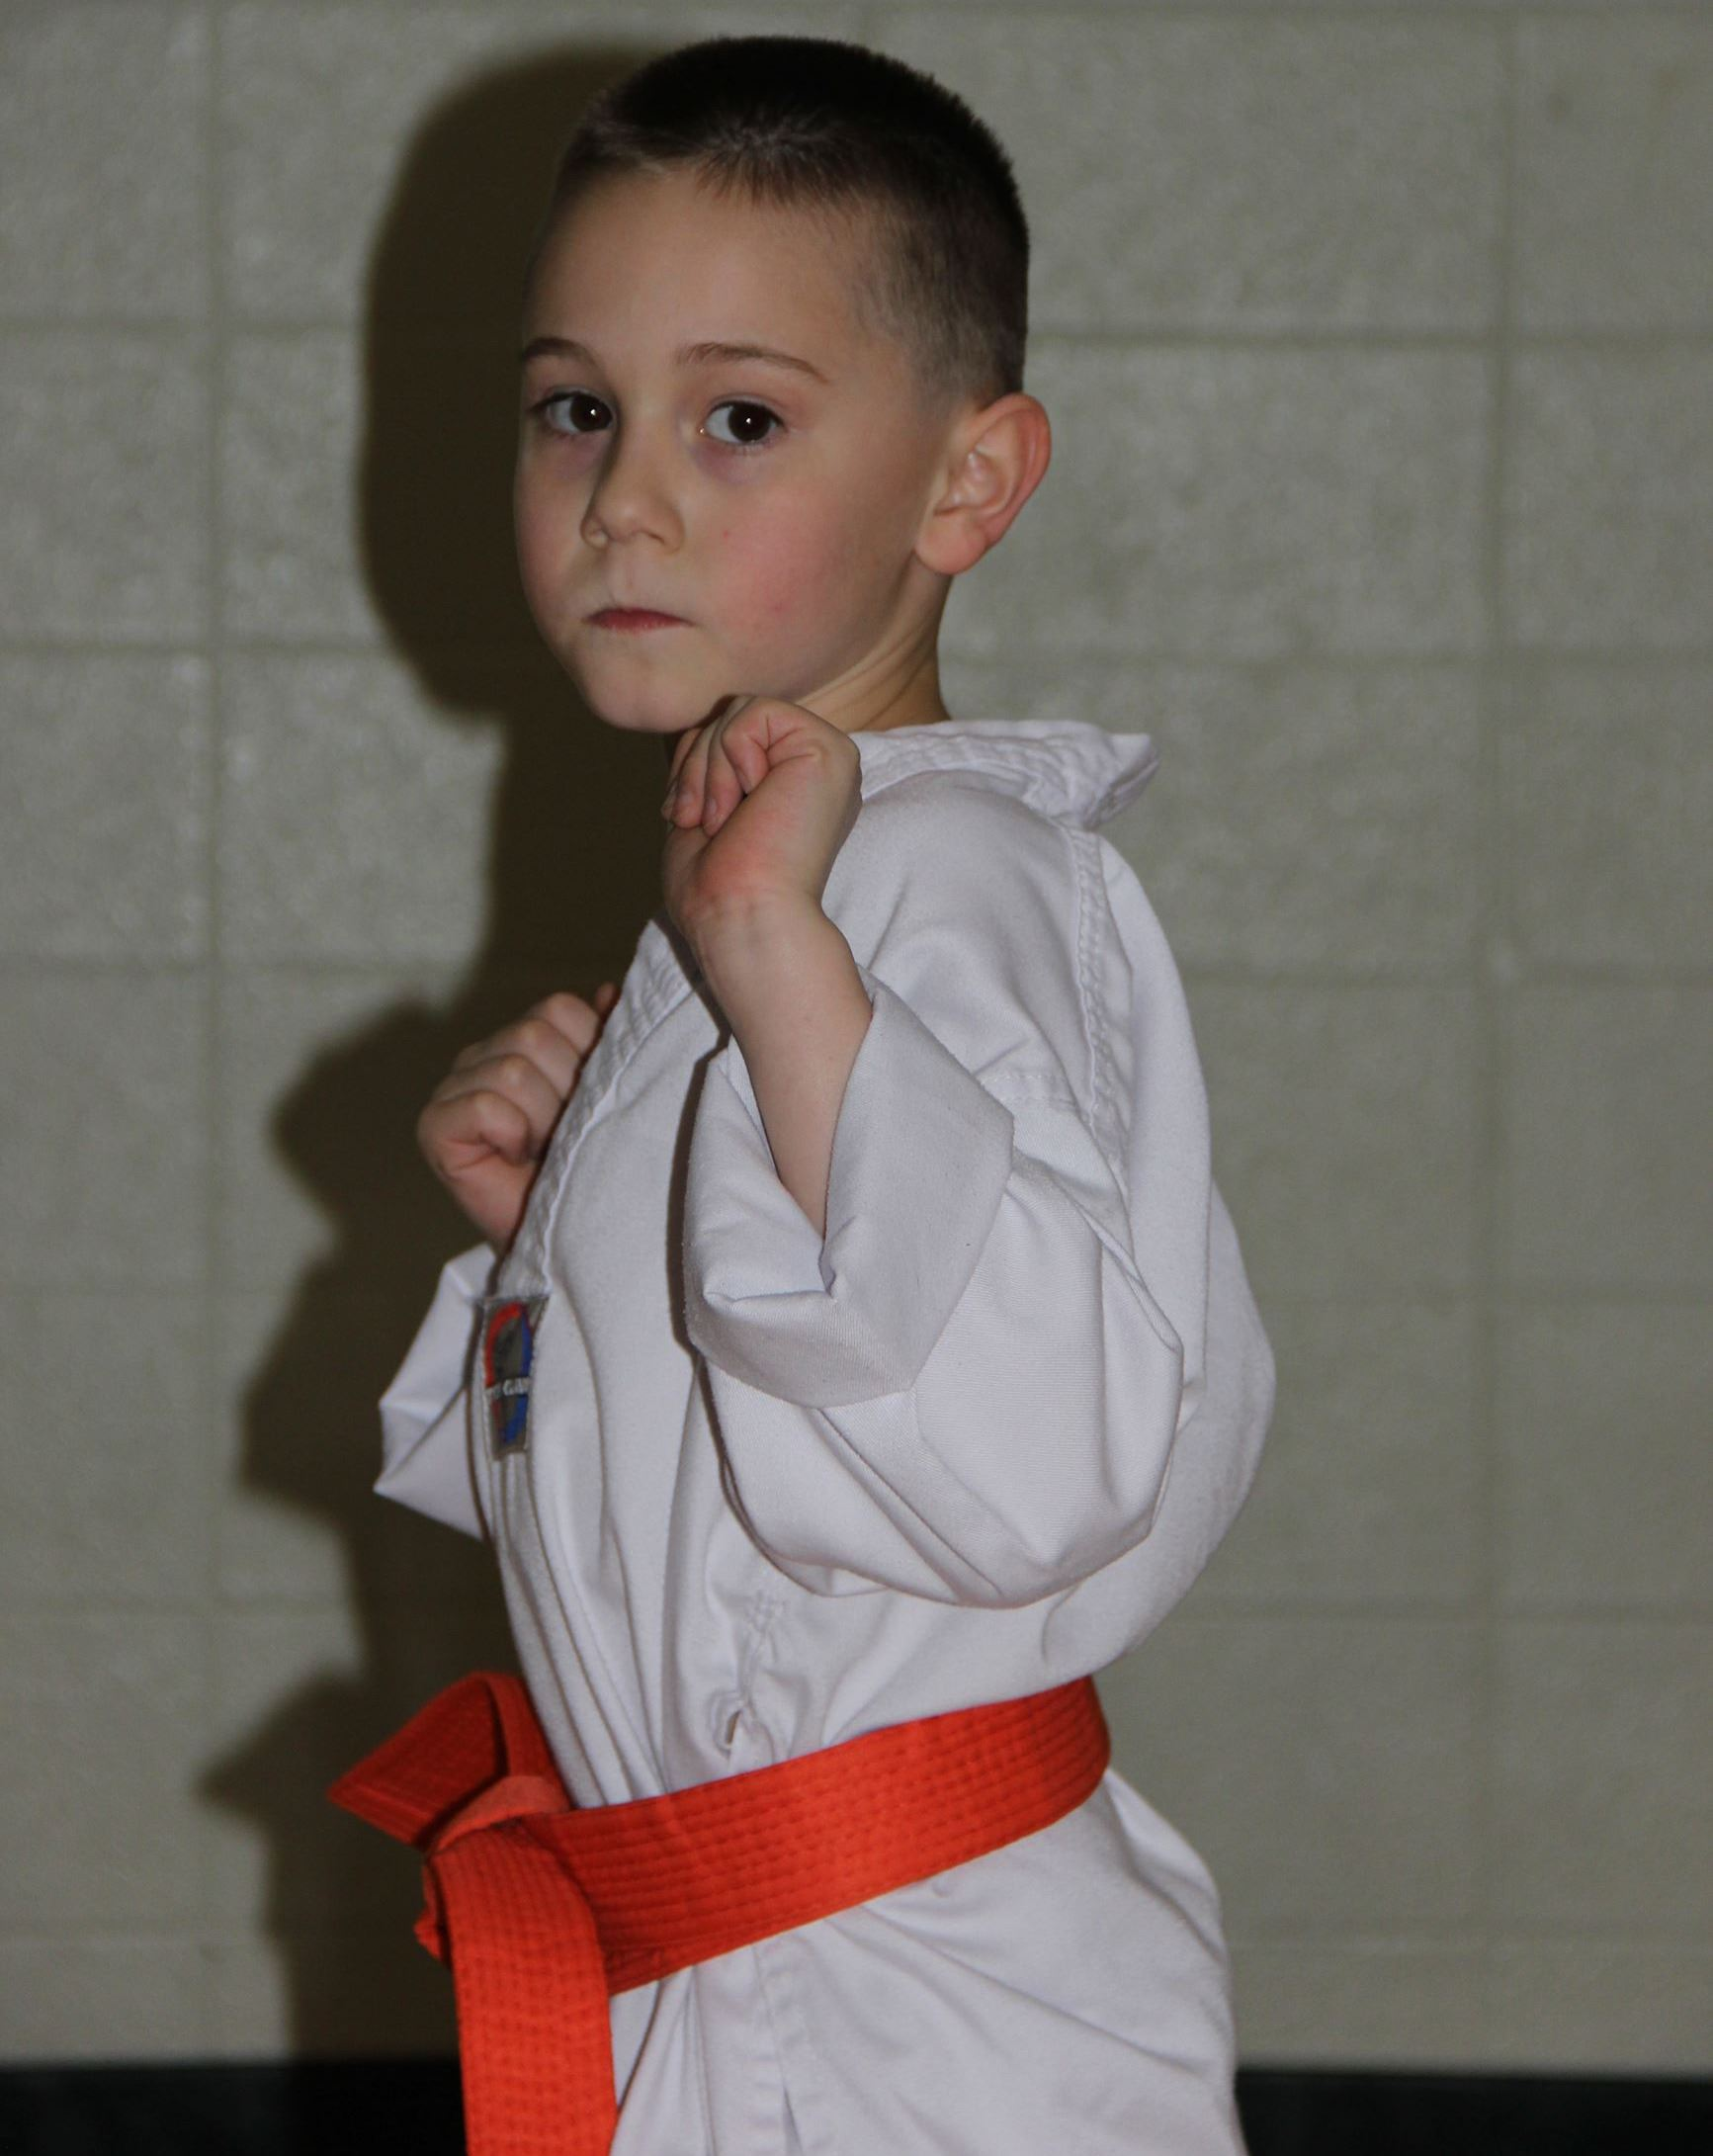 Little boy with orange belt